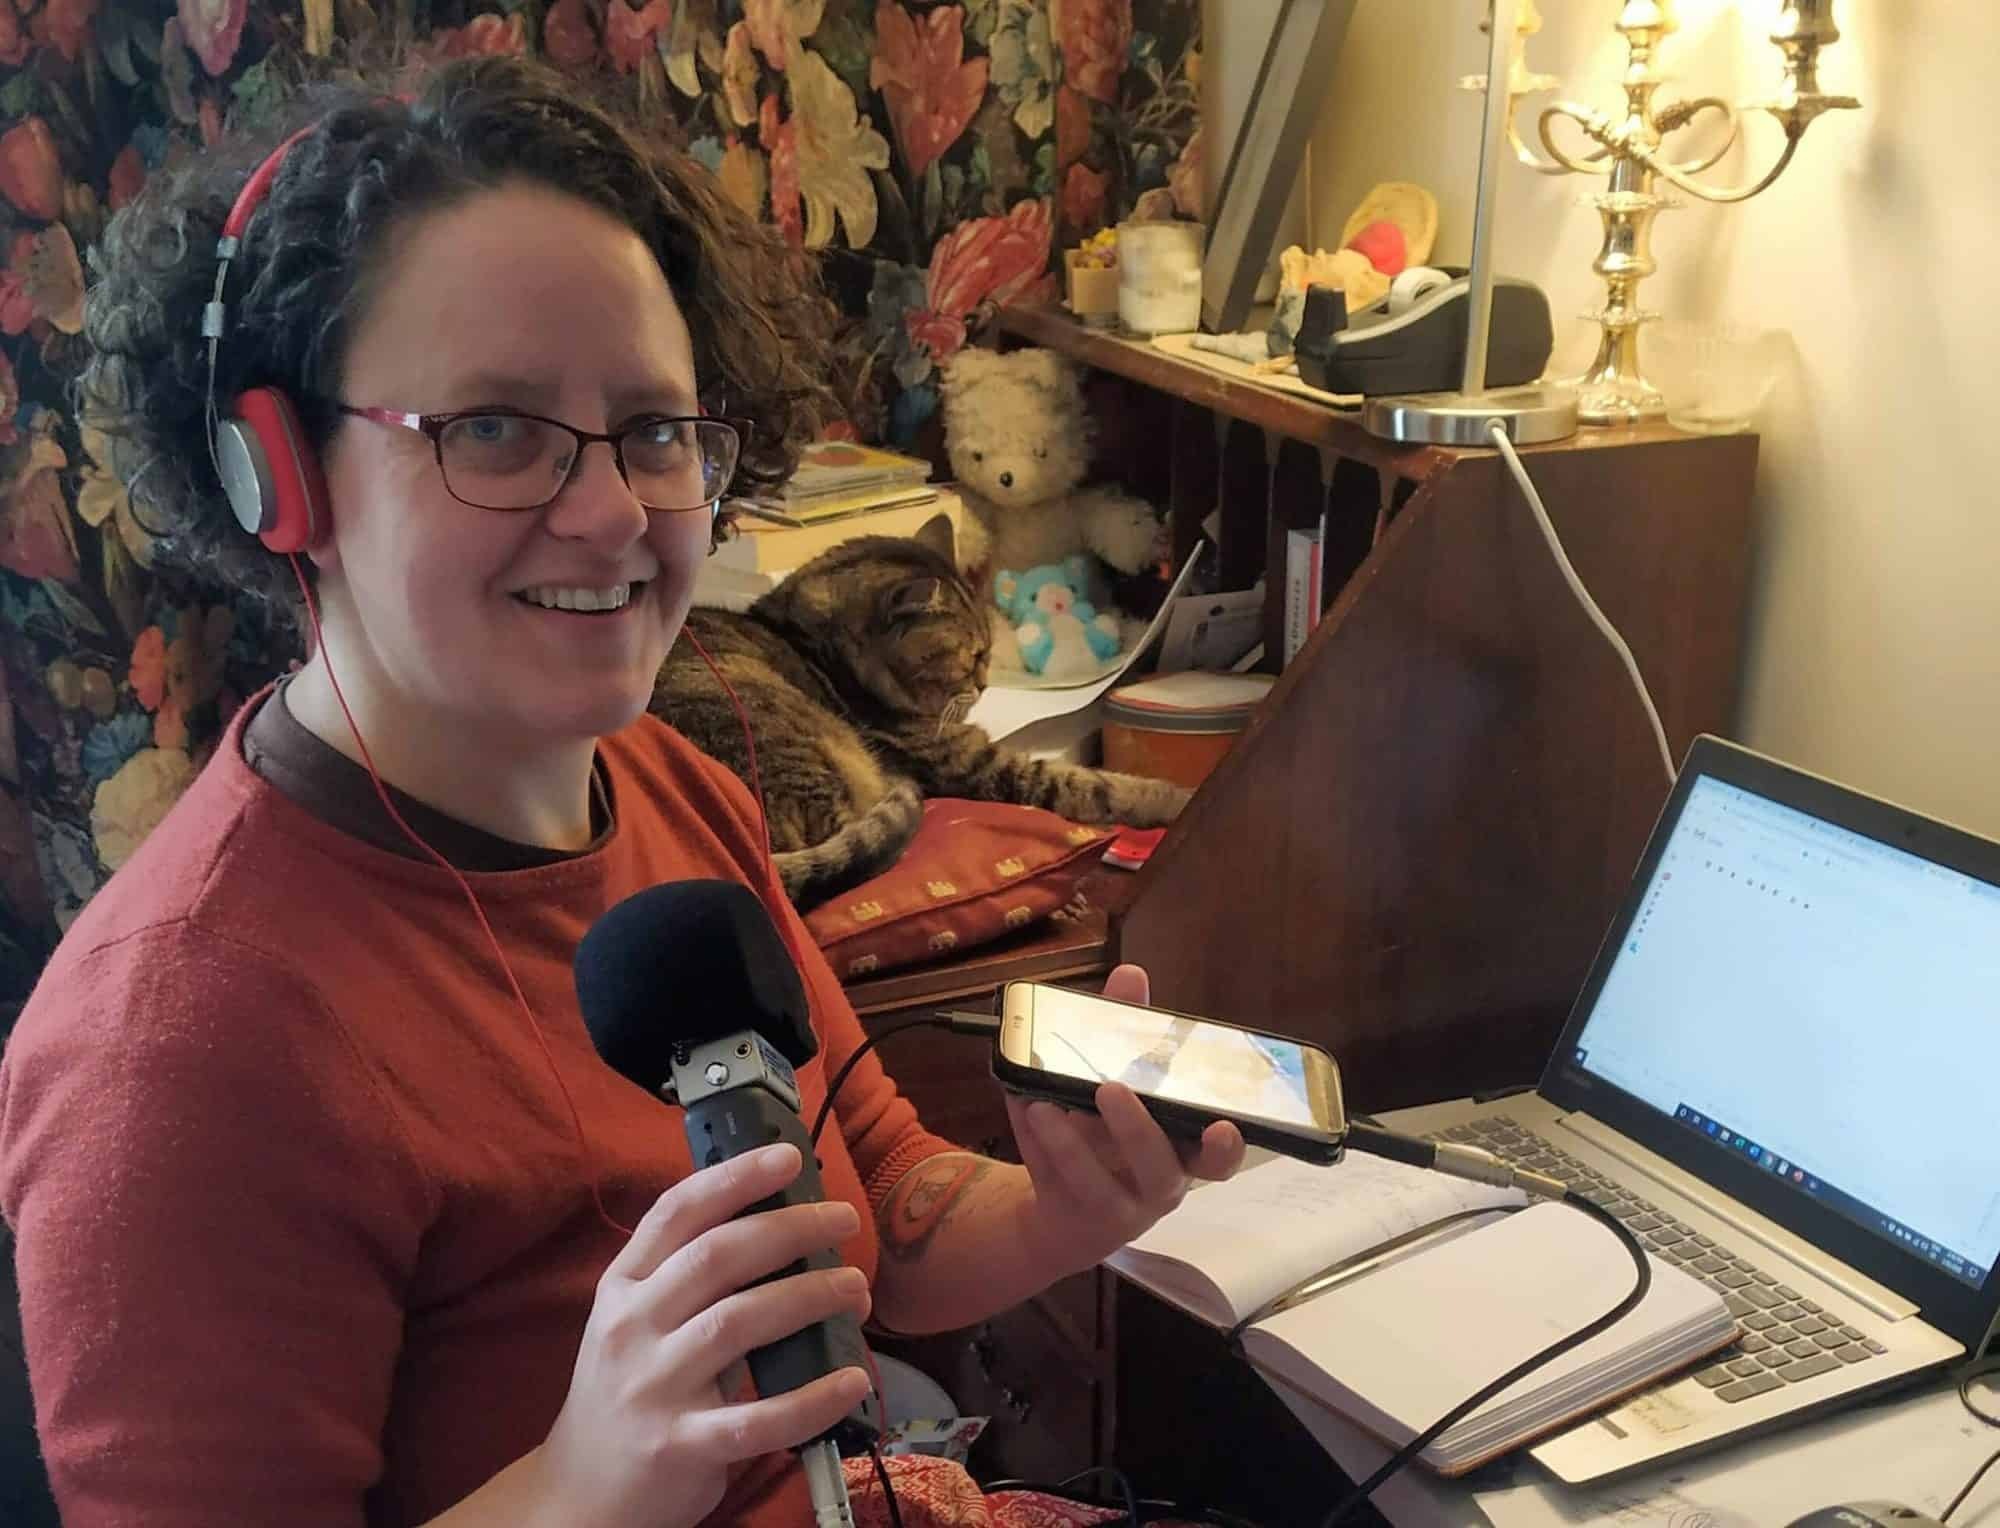 Podcast brings science and community action together